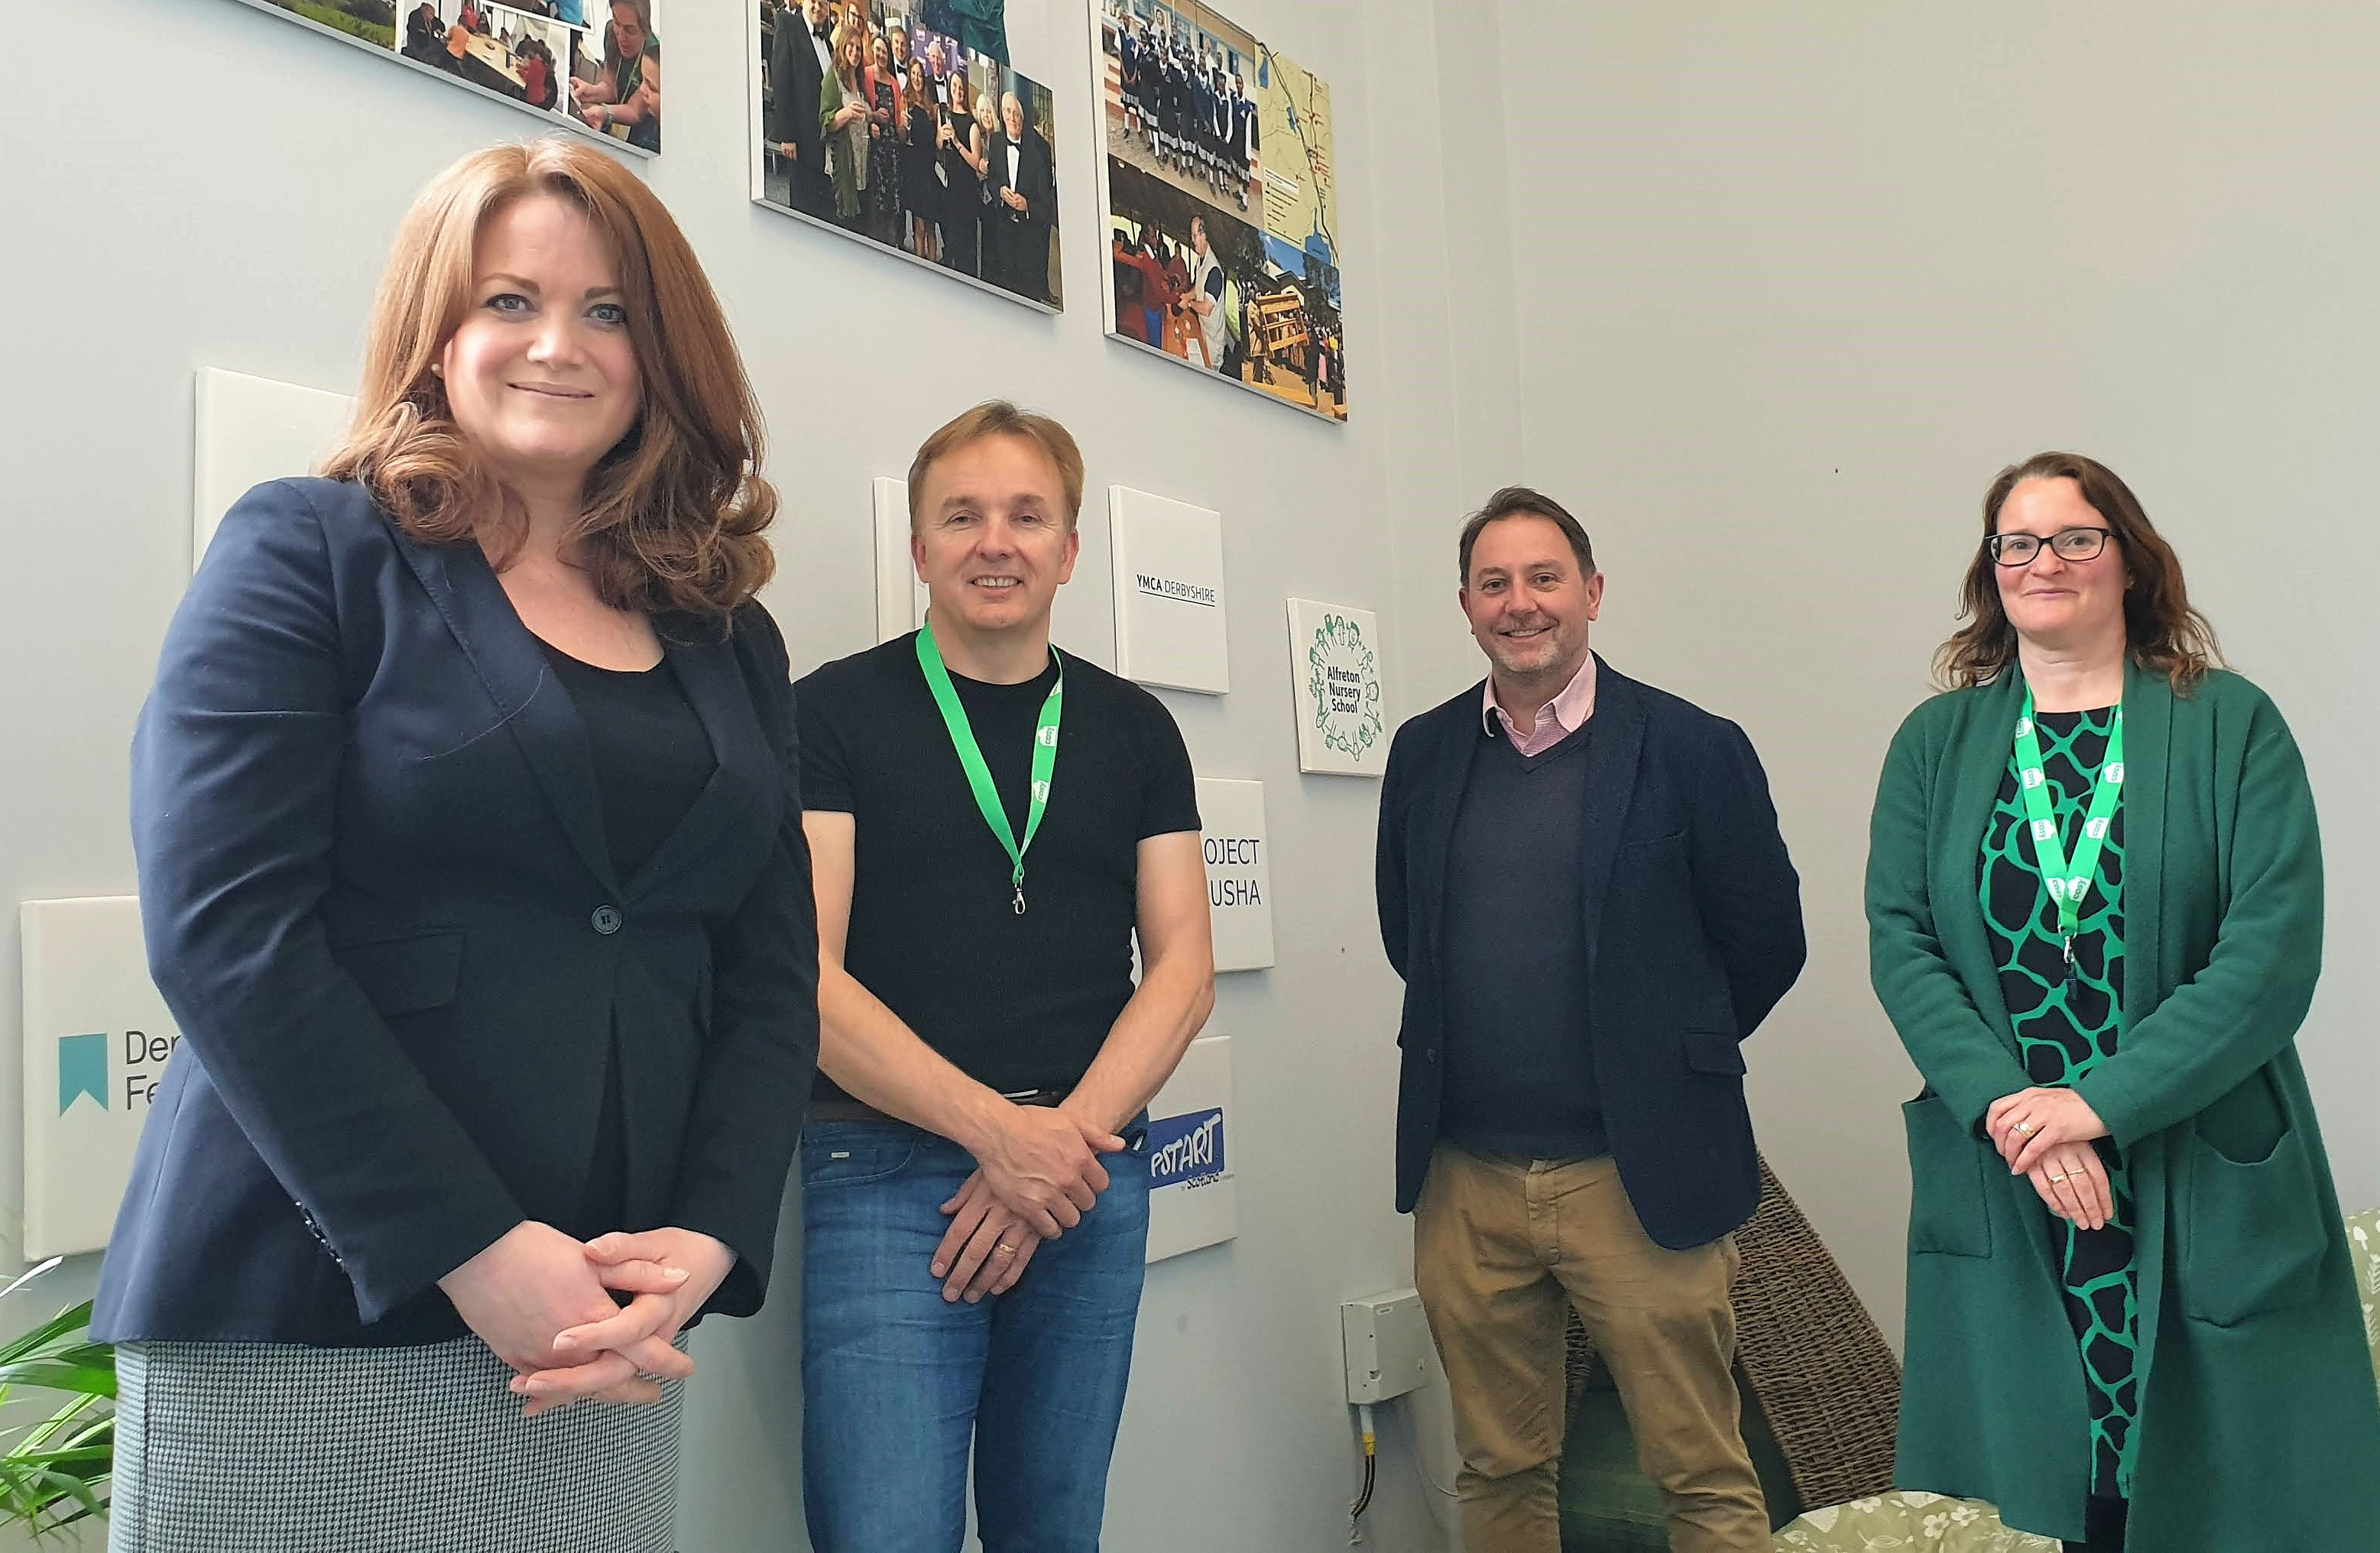 Burton MP makes history at the Derbyshire firm putting the fun back into children's learning all over the world